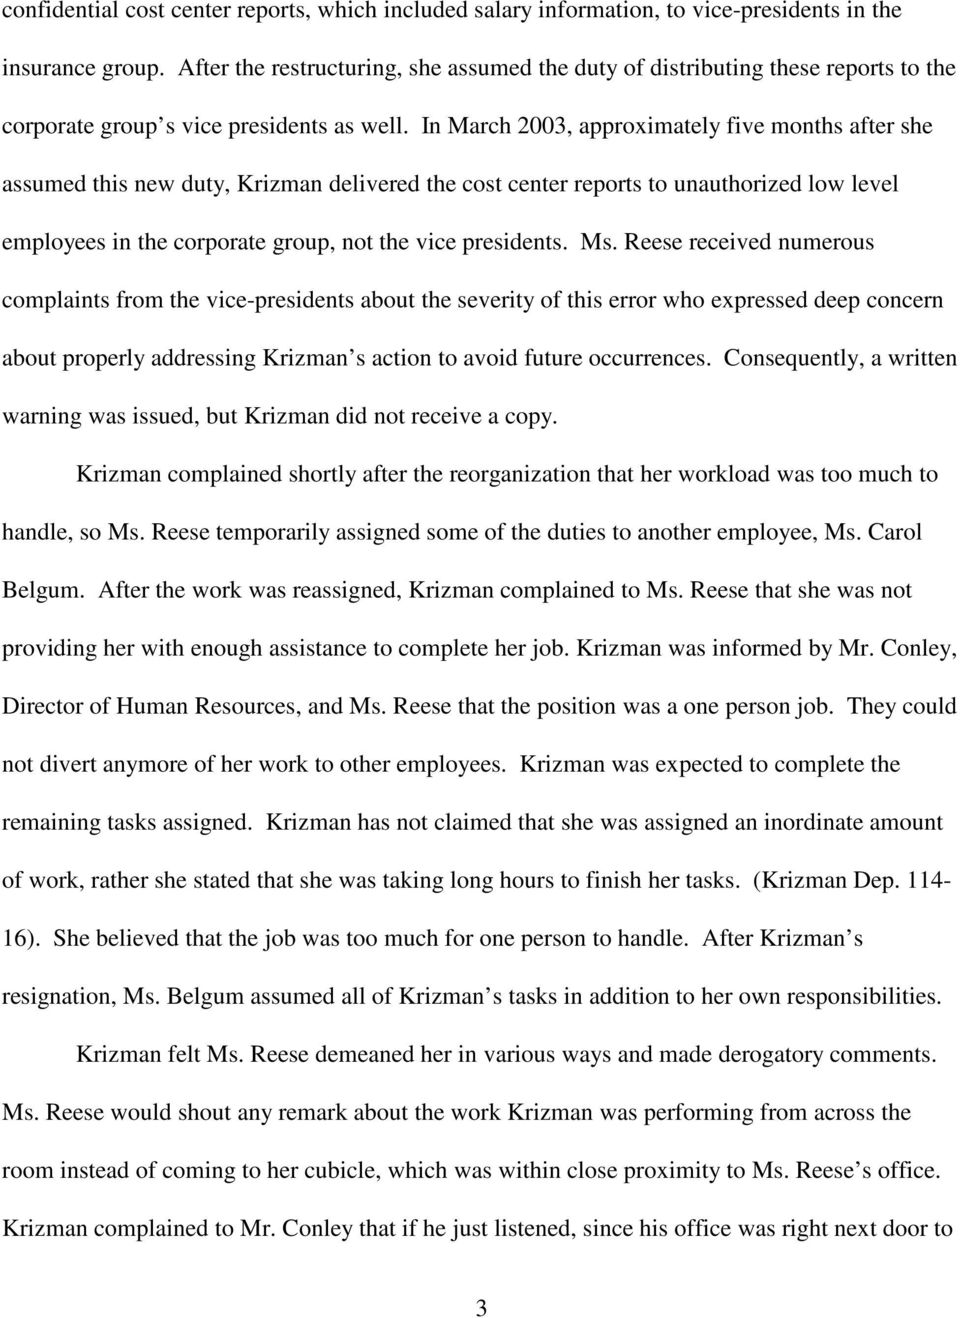 In March 2003, approximately five months after she assumed this new duty, Krizman delivered the cost center reports to unauthorized low level employees in the corporate group, not the vice presidents.